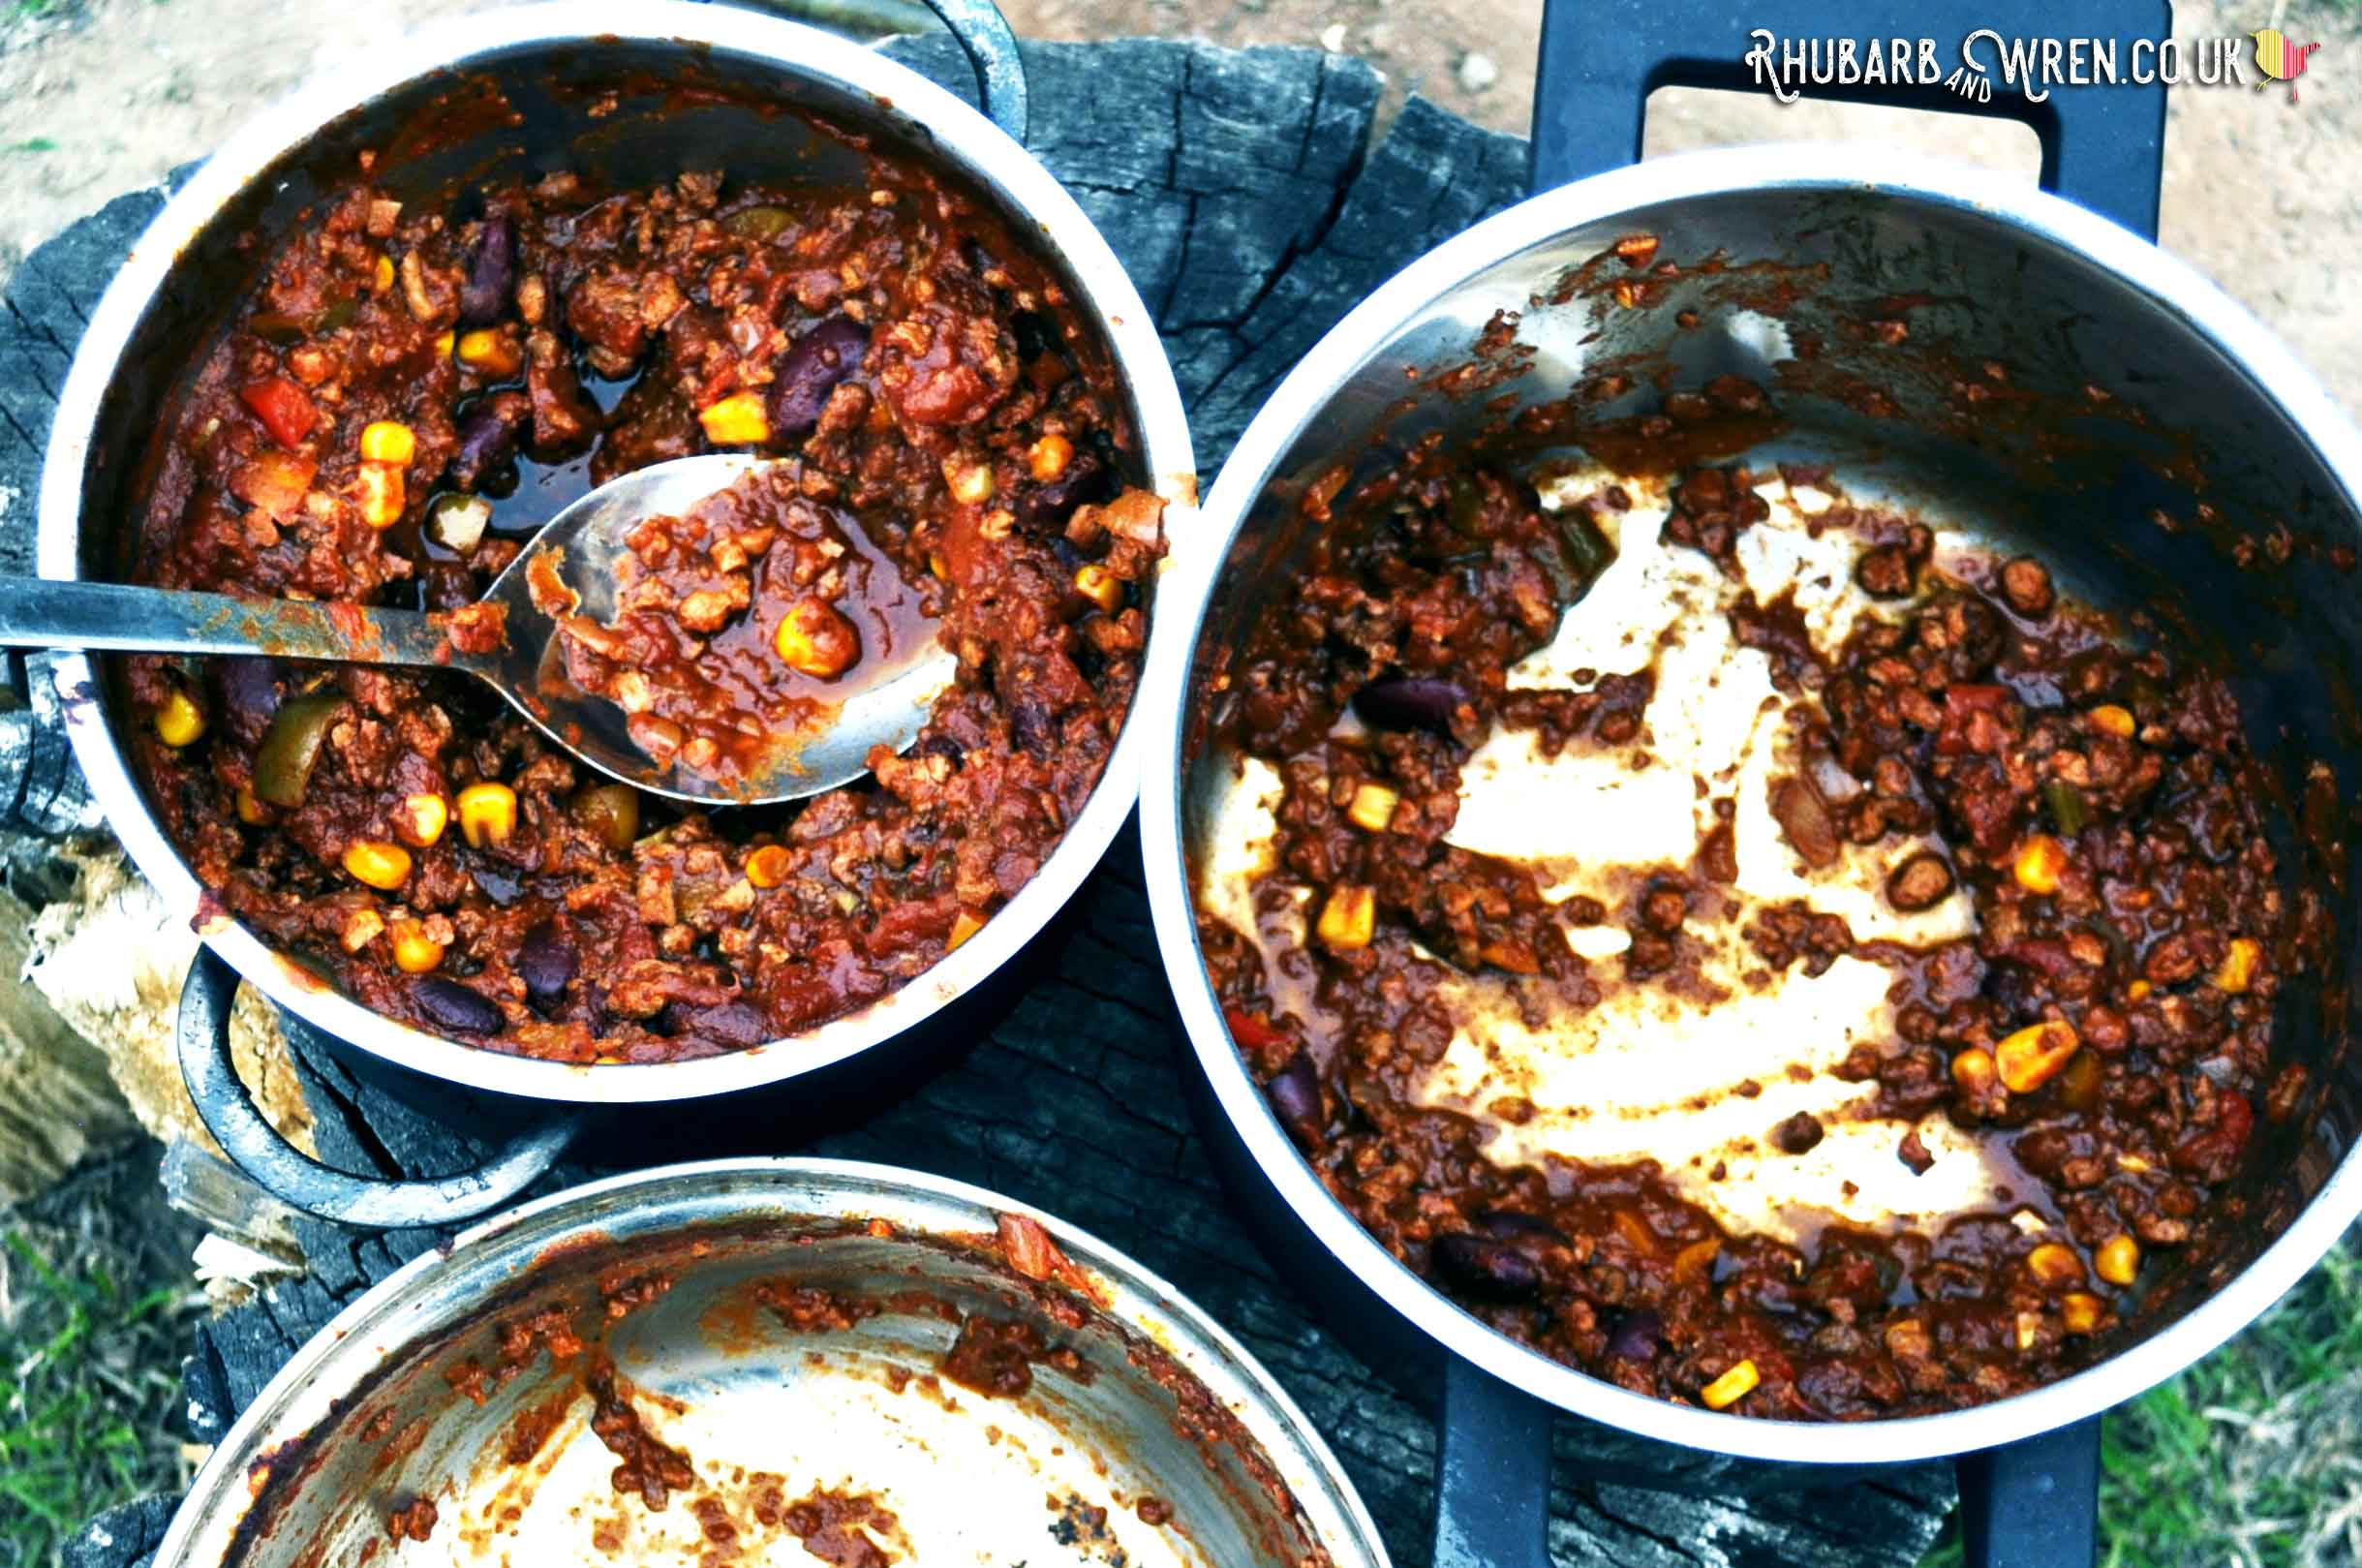 Family friendly vegan chilli cooked over camping campfire recipe